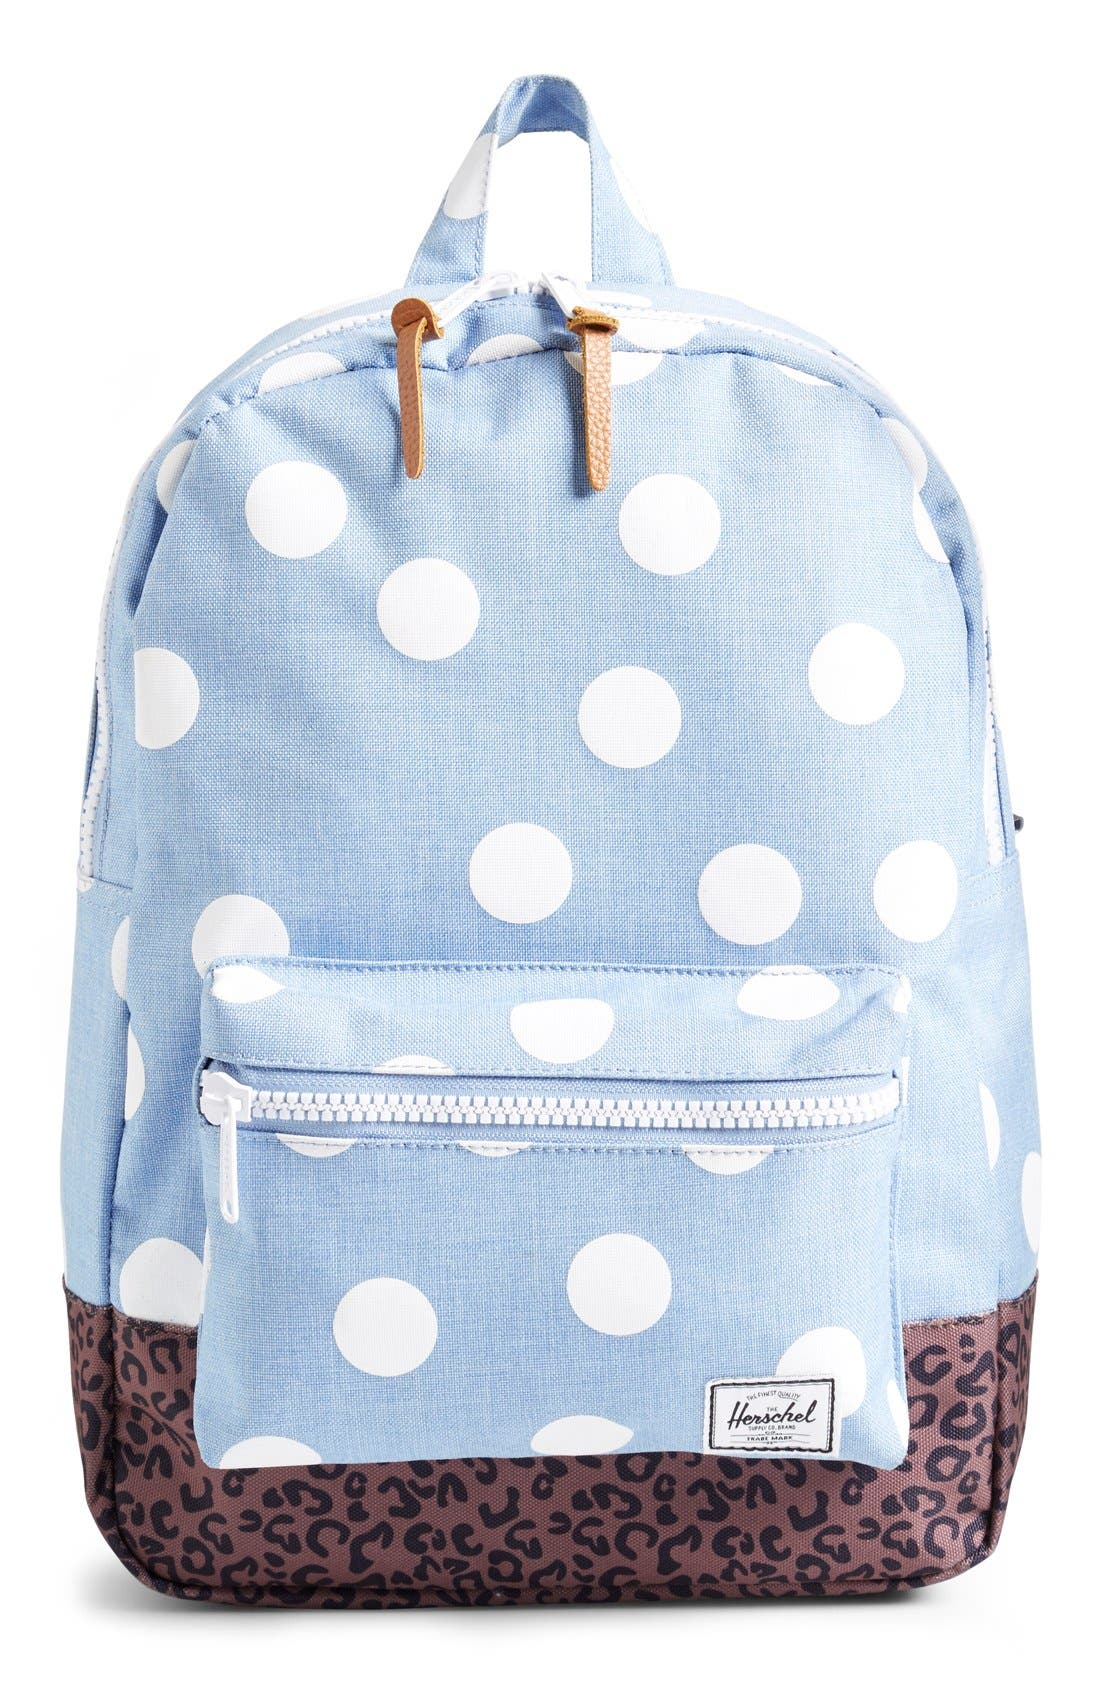 Alternate Image 1 Selected - Herschel Supply Co. 'Settlement' Backpack (Kids)